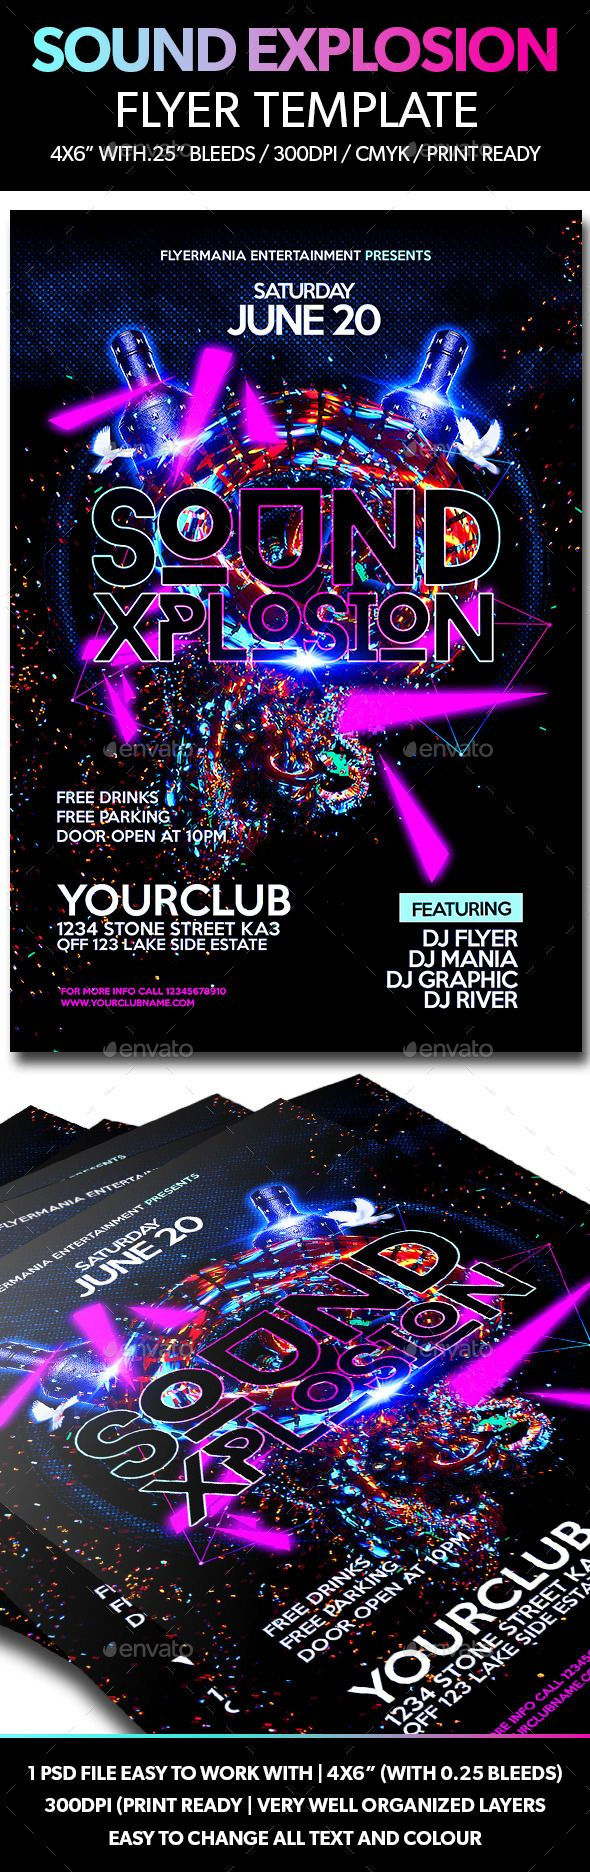 Best Night Club Images On   Advertising Design